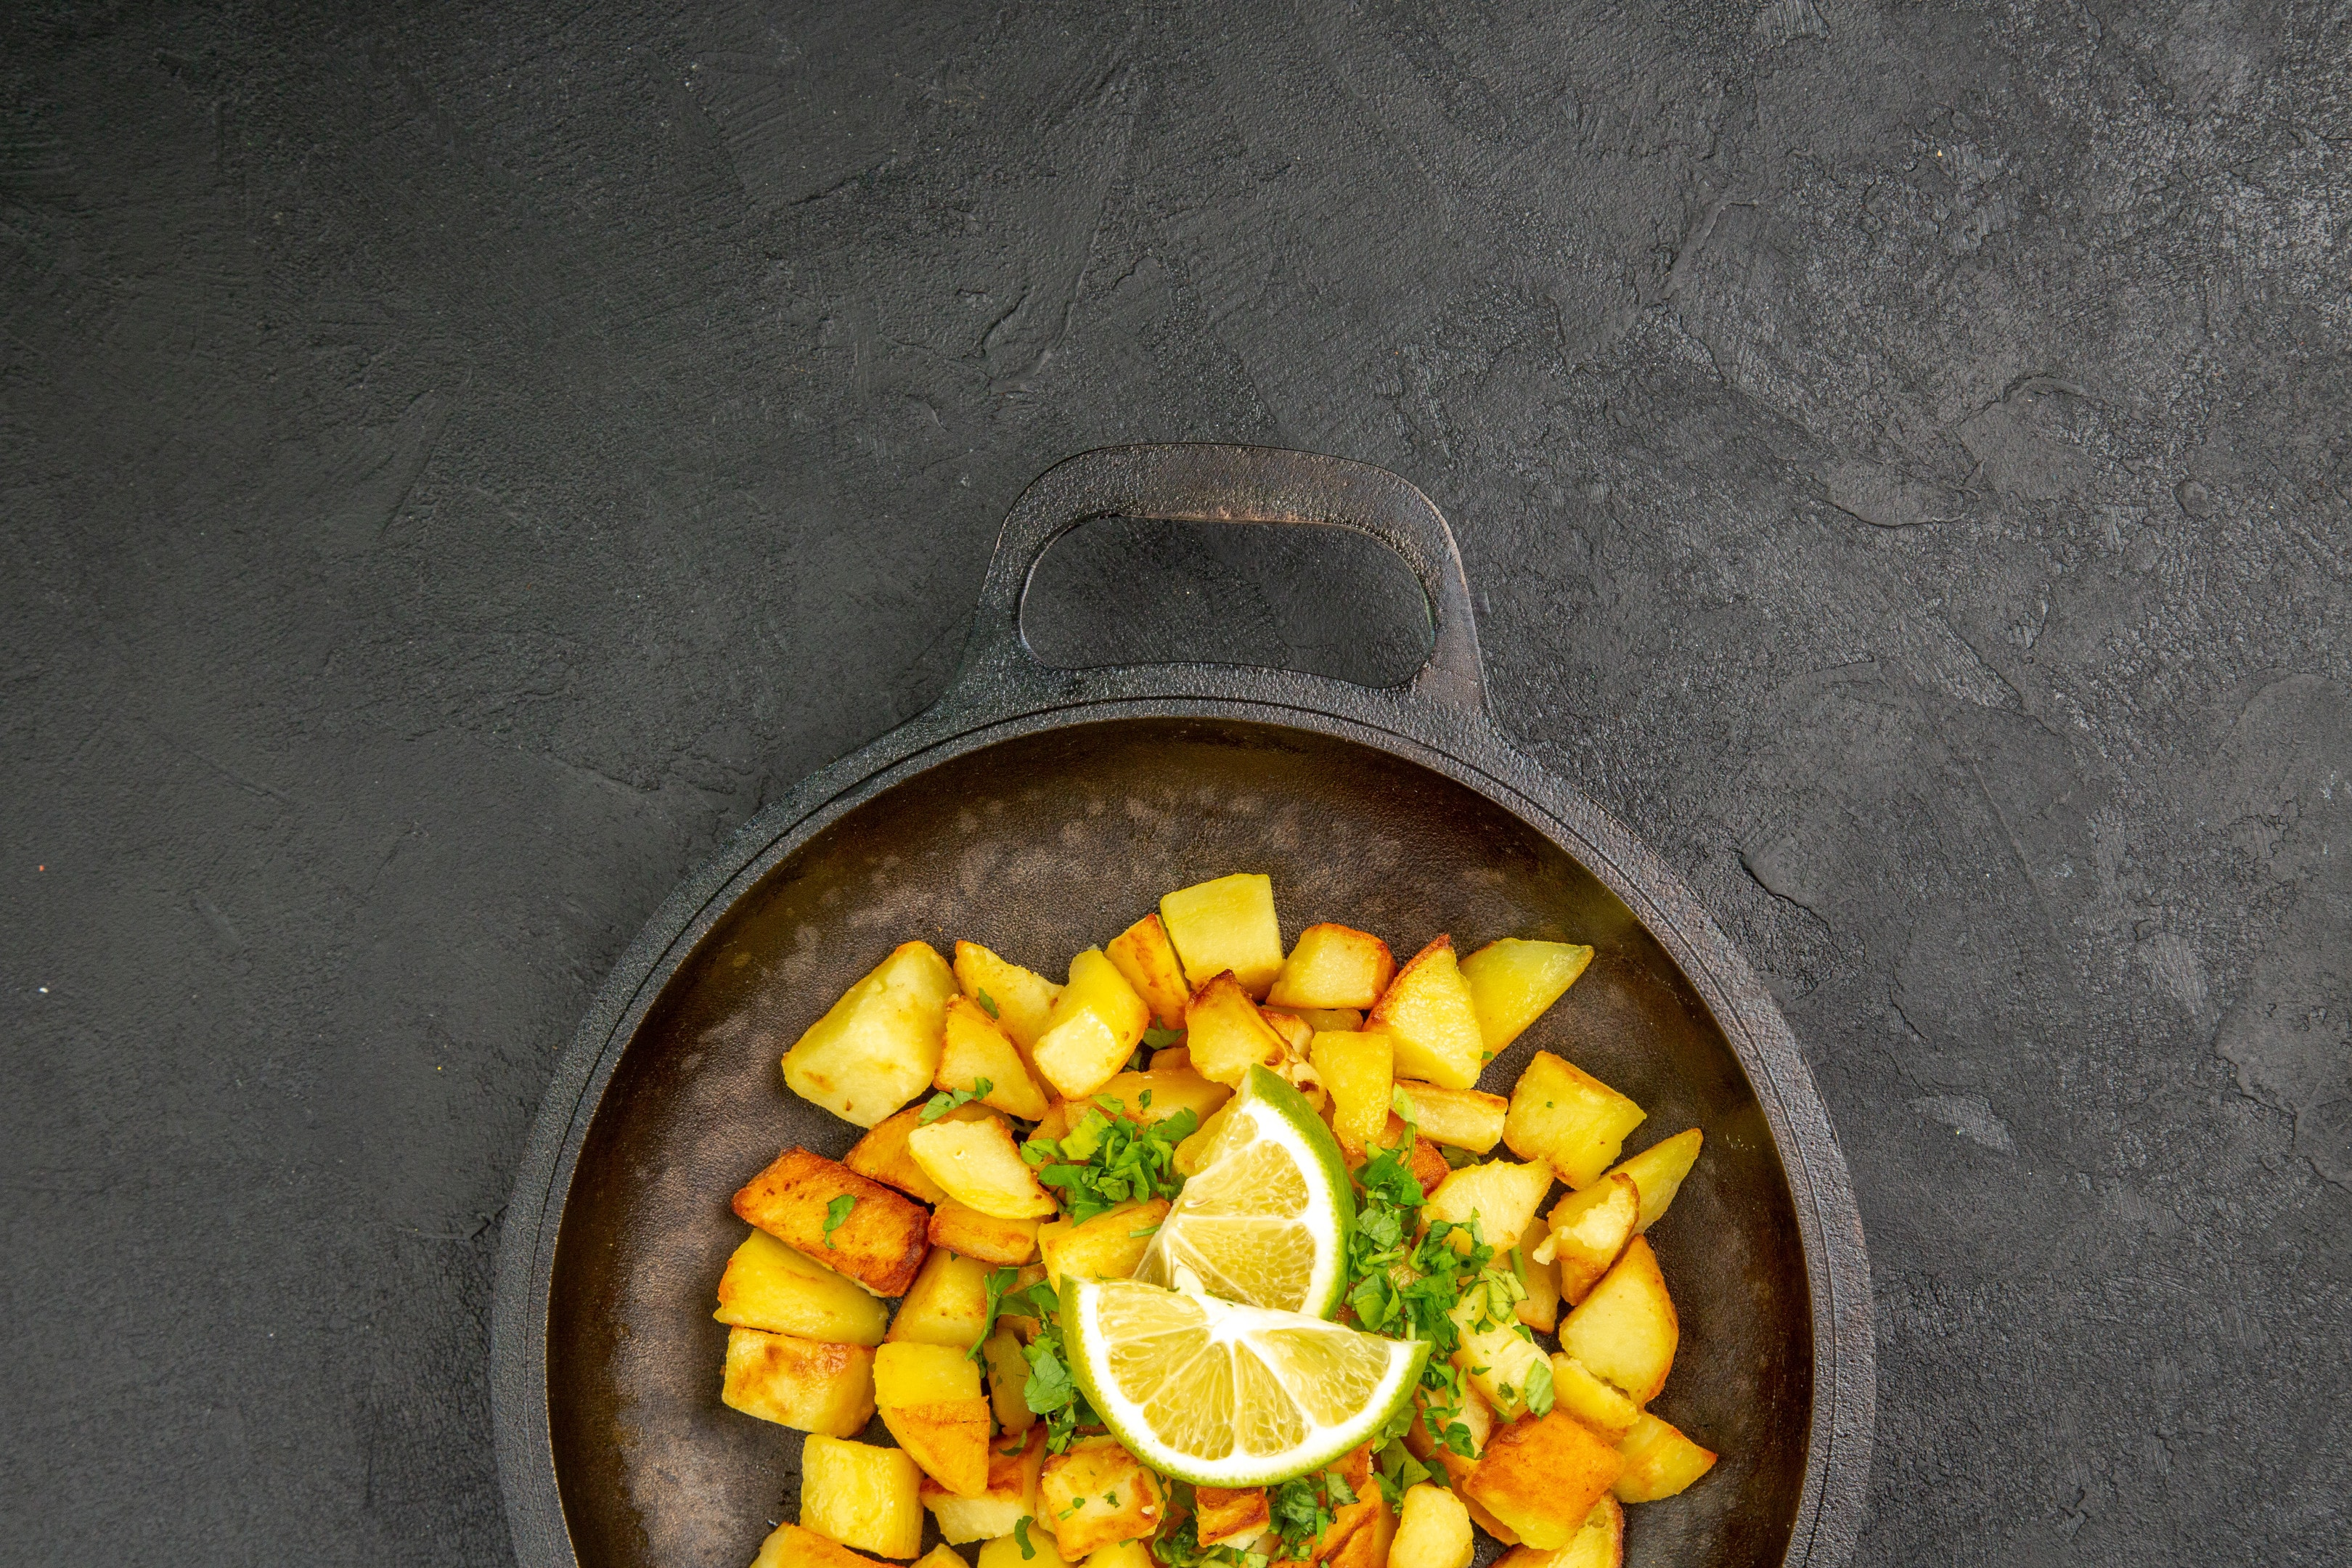 Fried potatoes in a pan with lemon slices on dark surface